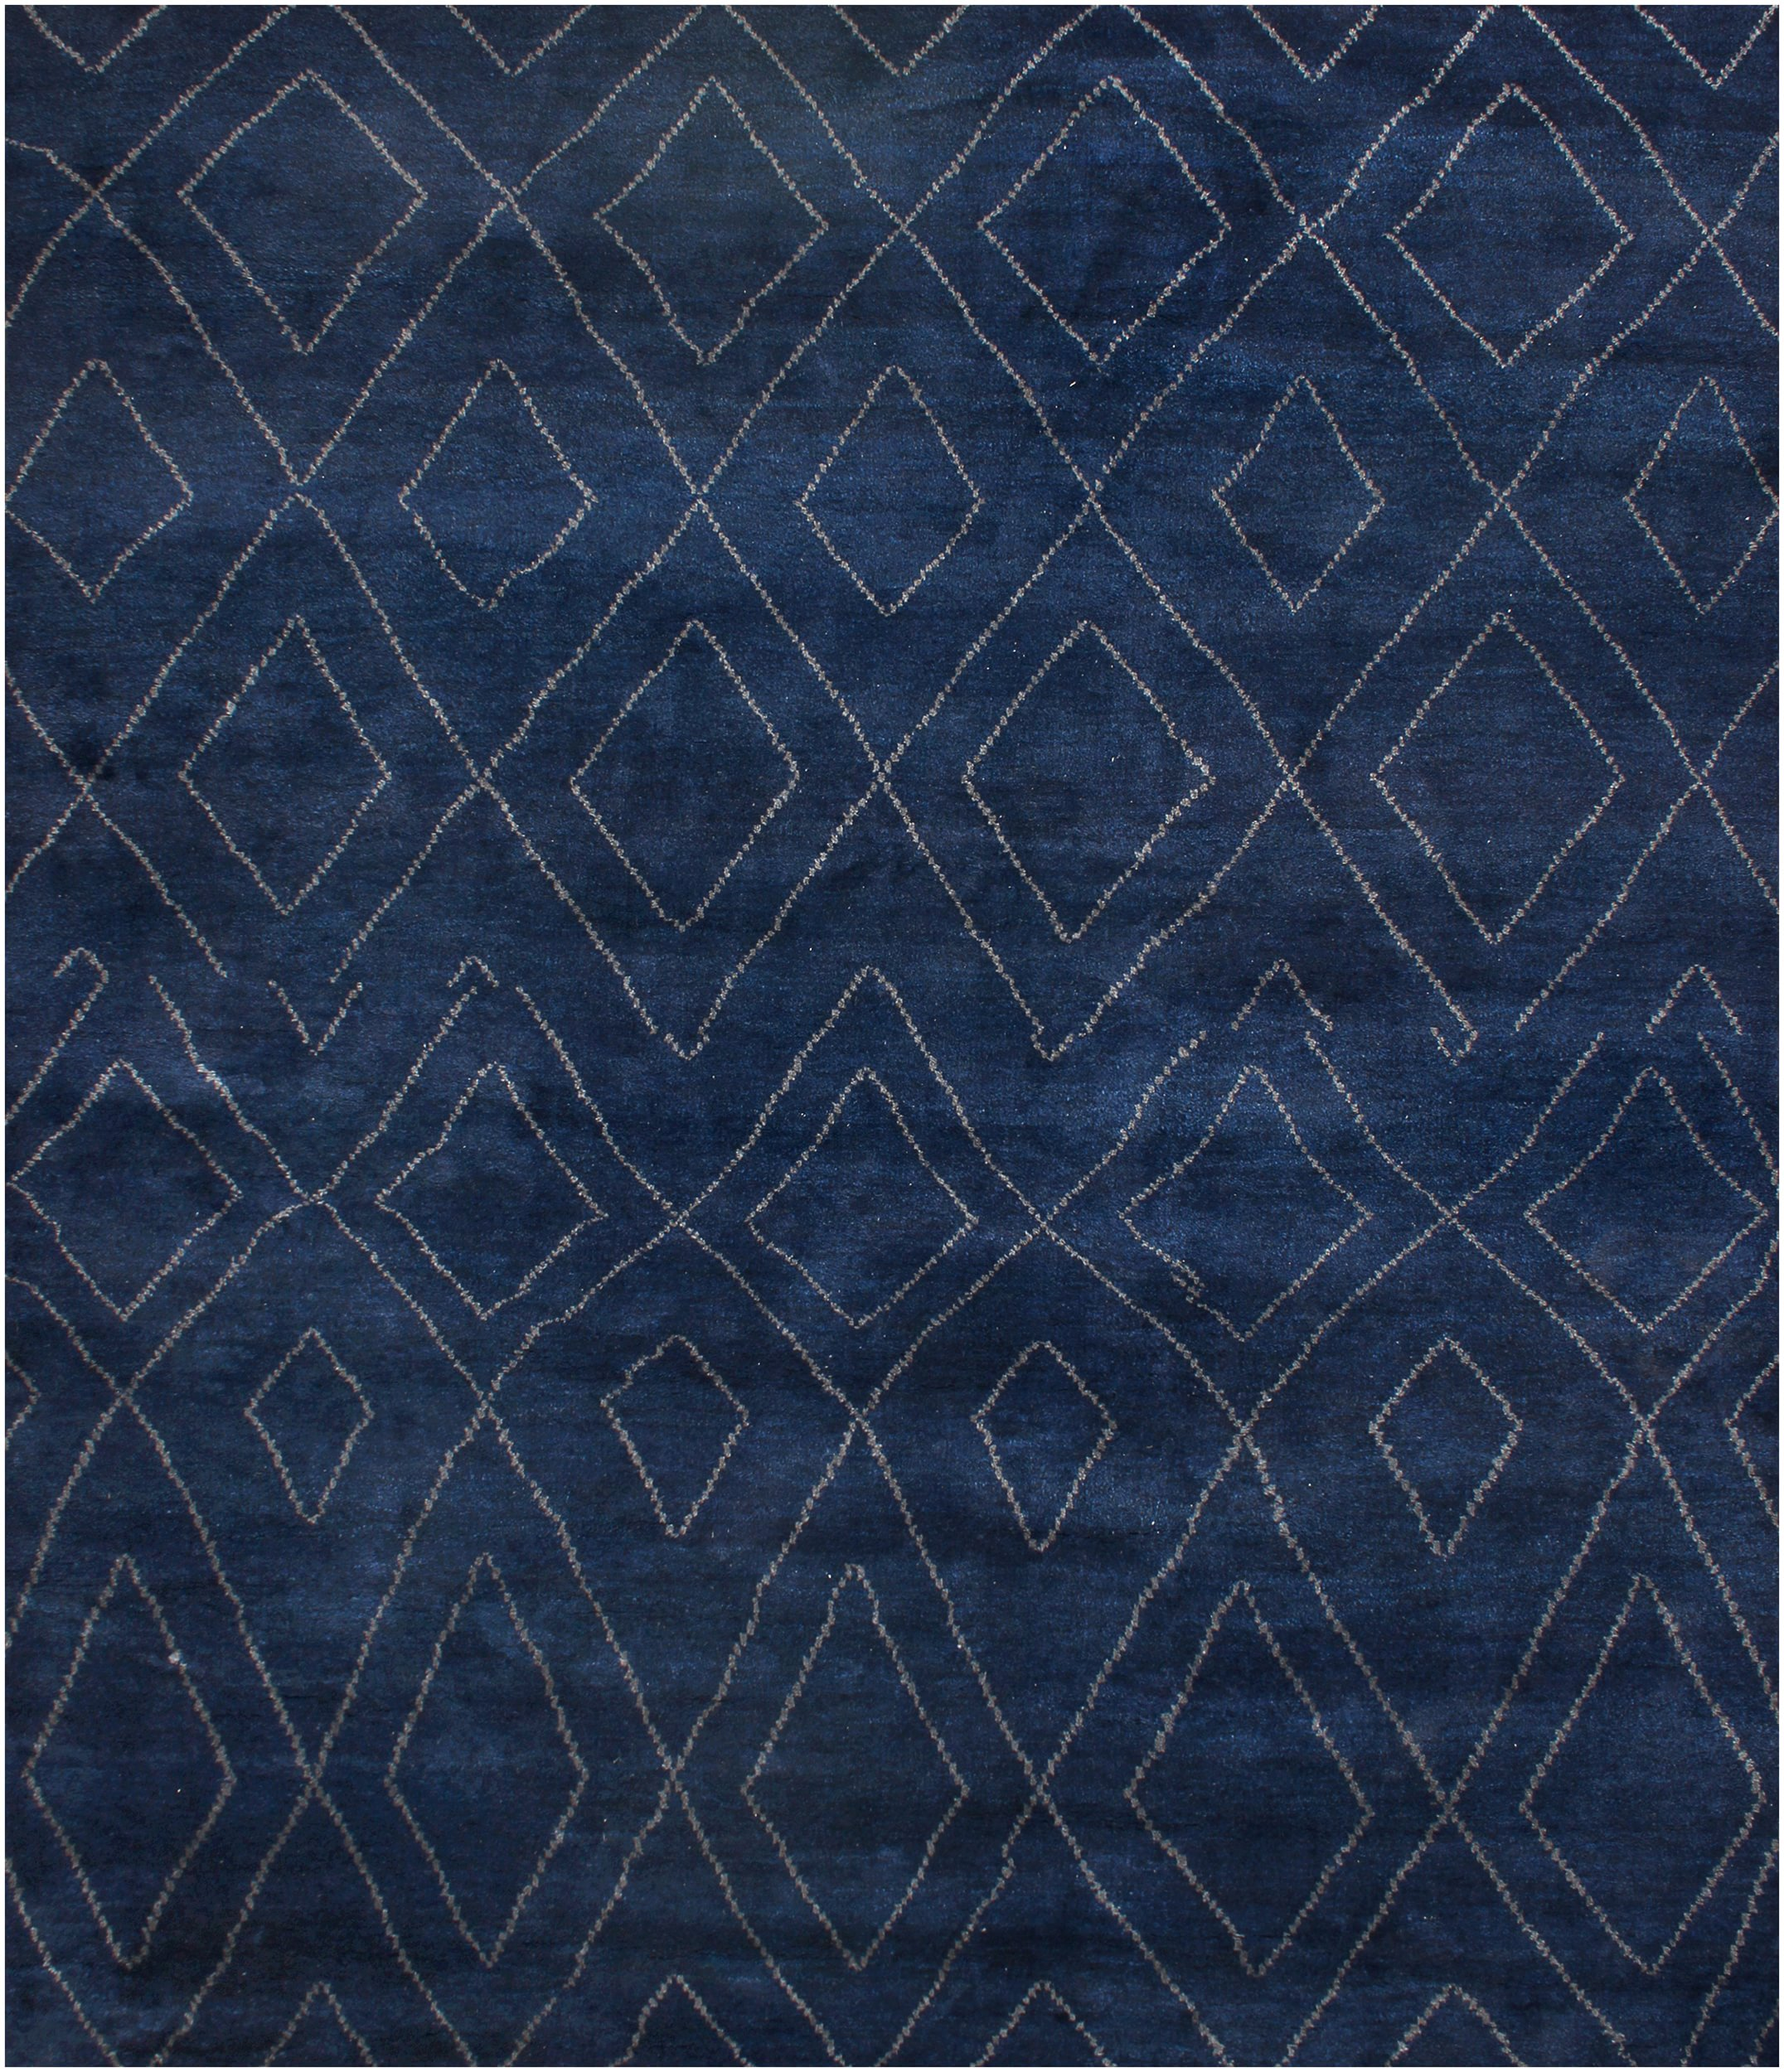 Rugsville Moroccan Beni Ourain Double Diamond Navy Wool